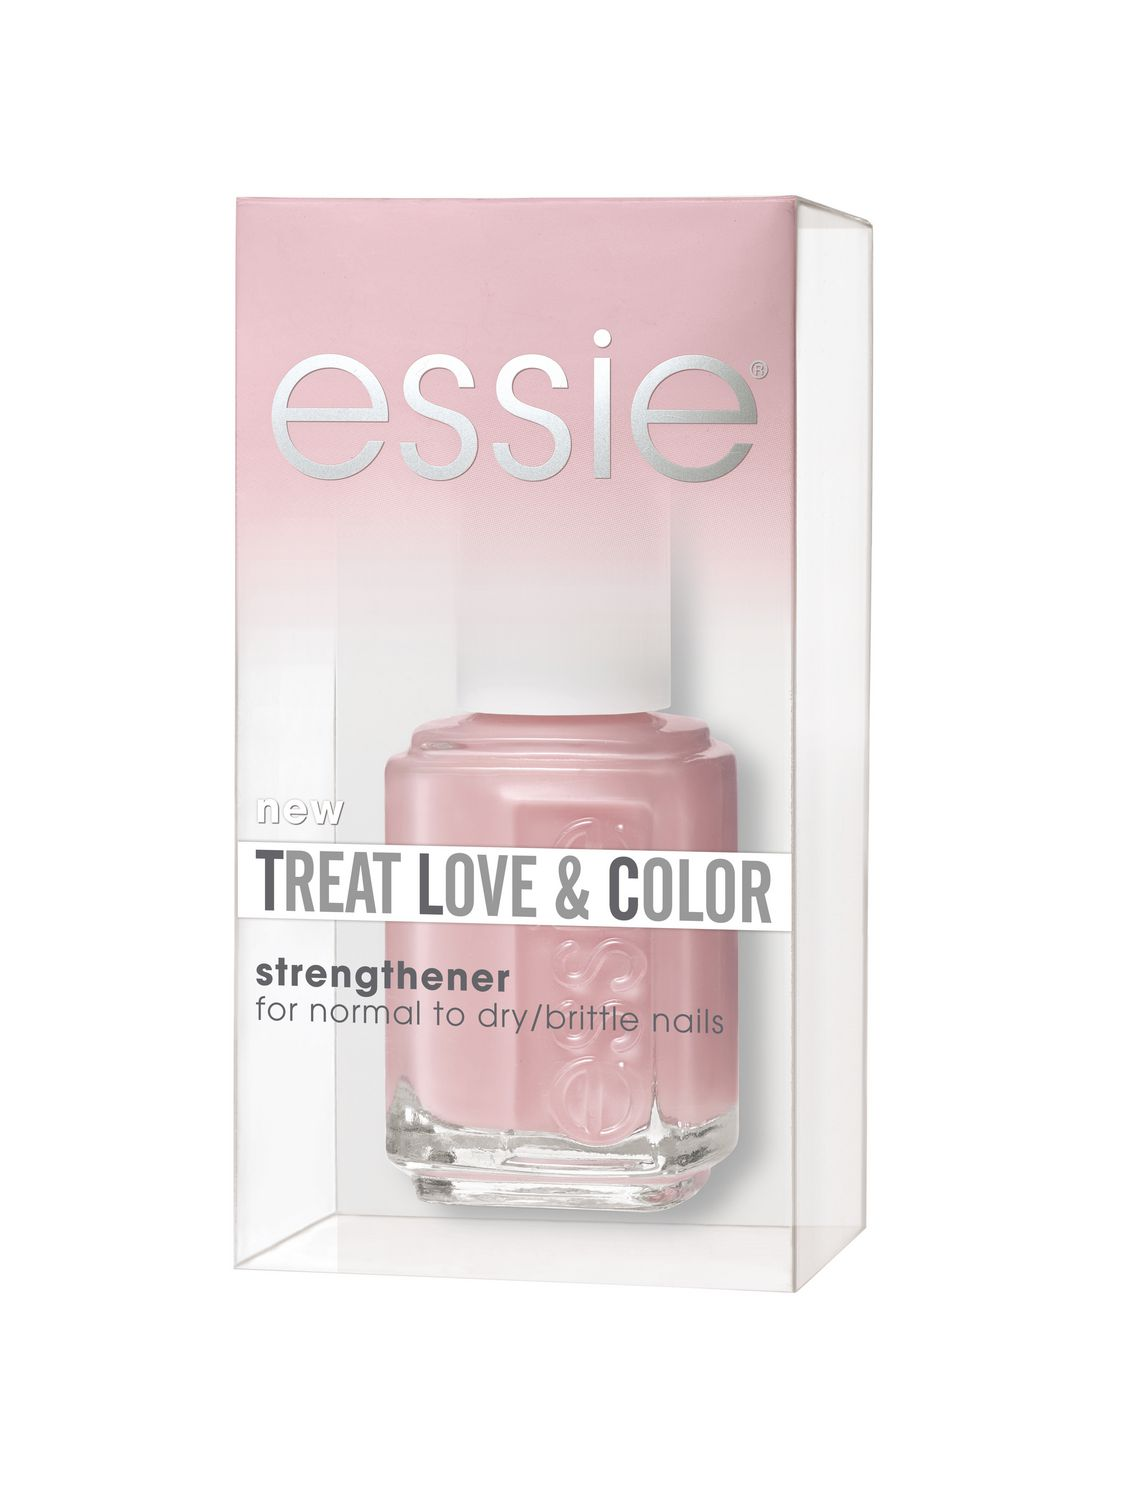 Essie Treat Love & Colour Nail Strengthener | Walmart Canada